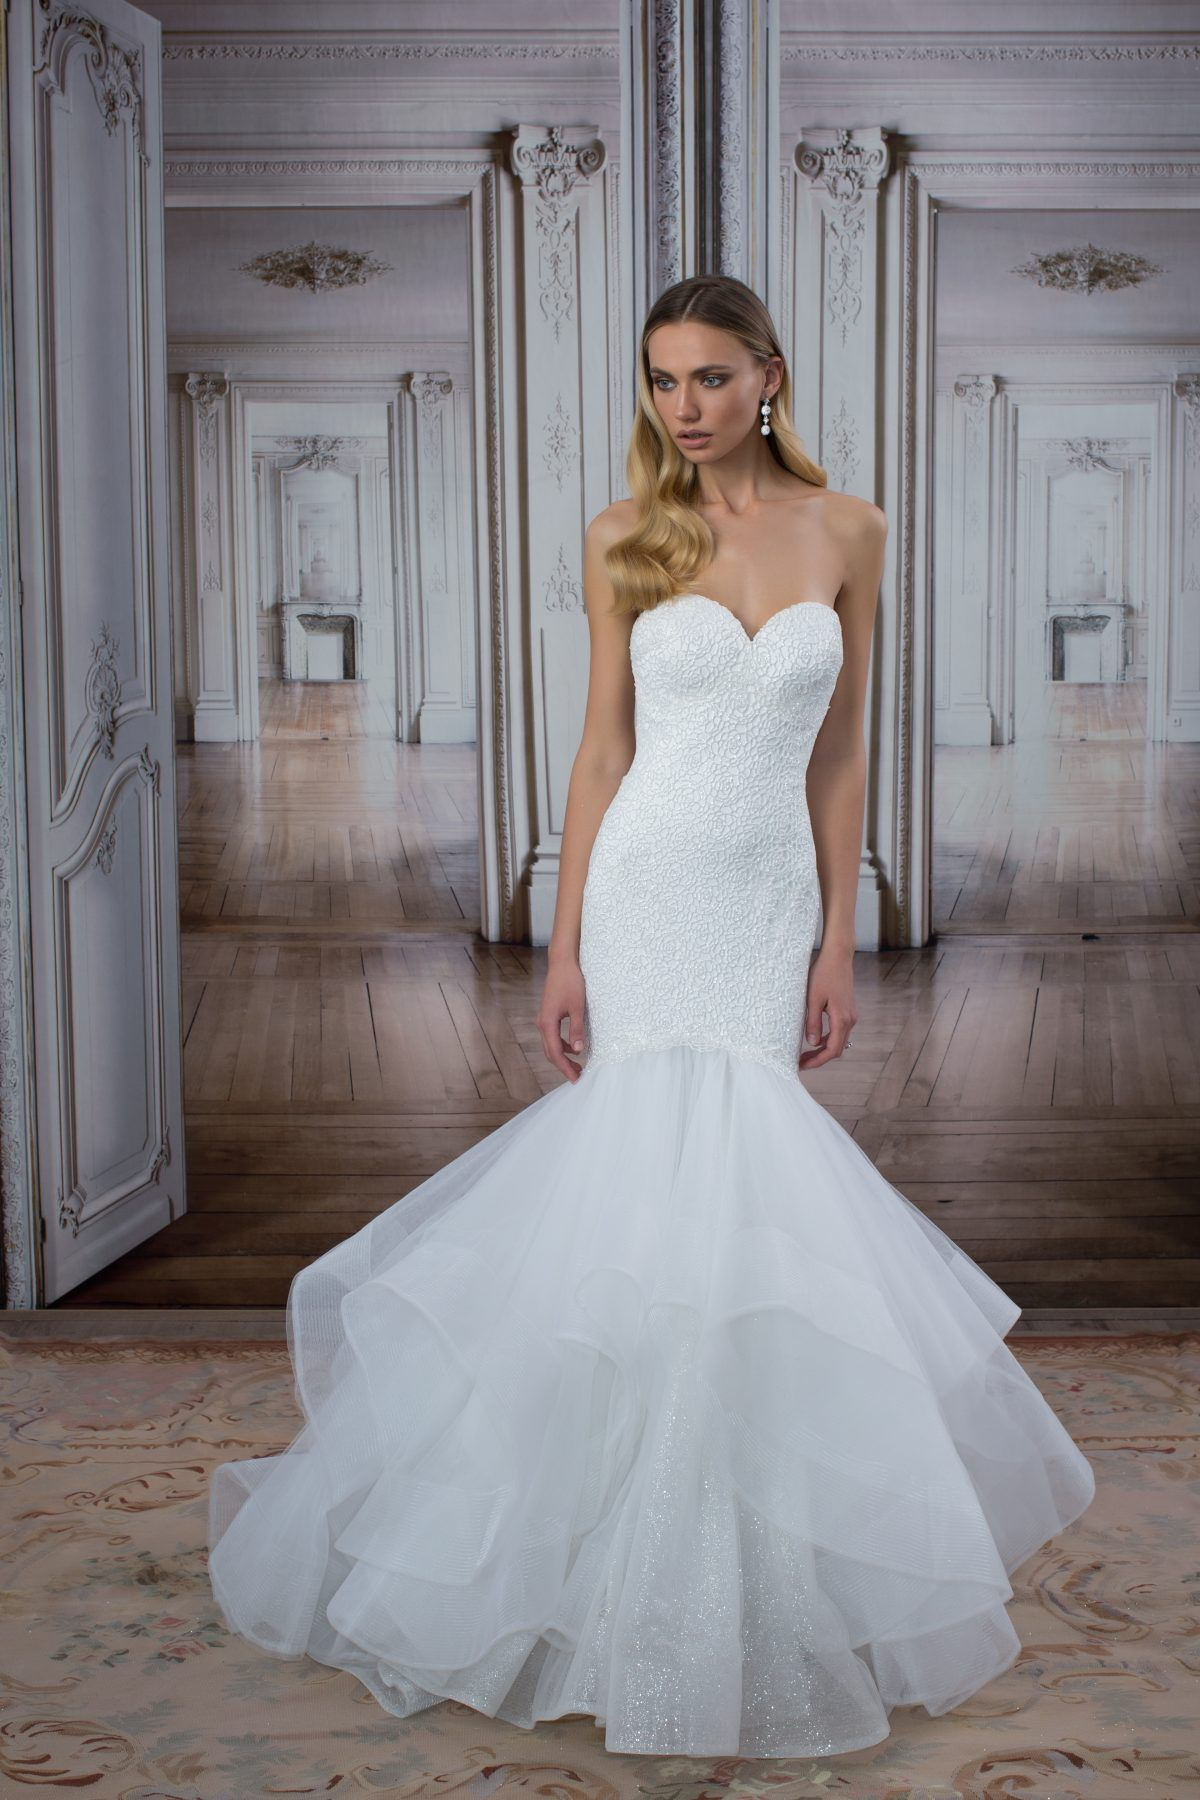 Sweetheart Neckline Mermaid Wedding Dress With Tiered Skirt Love By Pnina Tornai Style 14417 Wedding Dress Organza Mermaid Wedding Dress Wedding Dresses